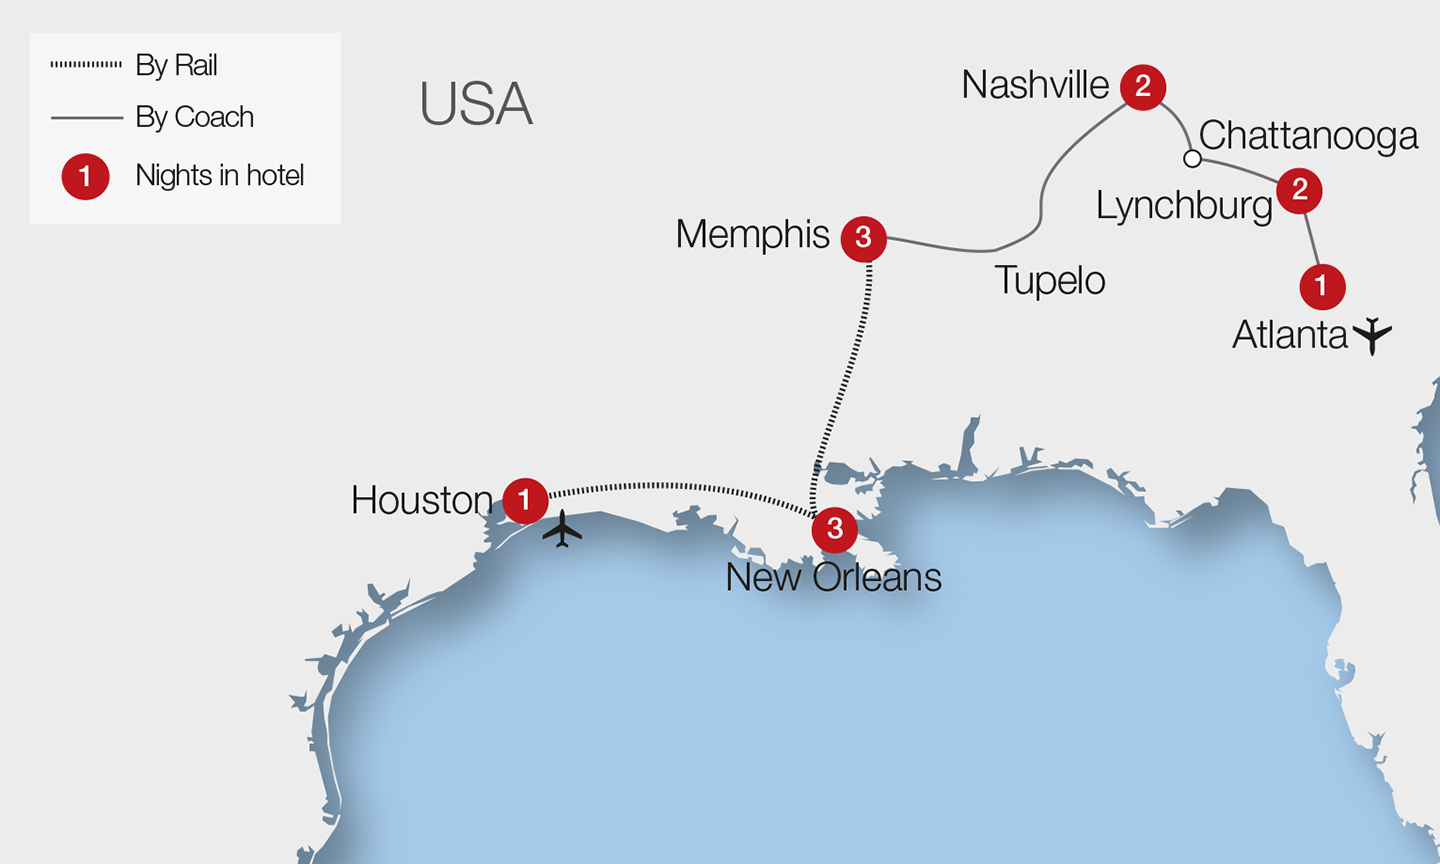 Tracks Of The Deep South Tour Great Rail Journeys - Atlanta to nashville rail on map of us